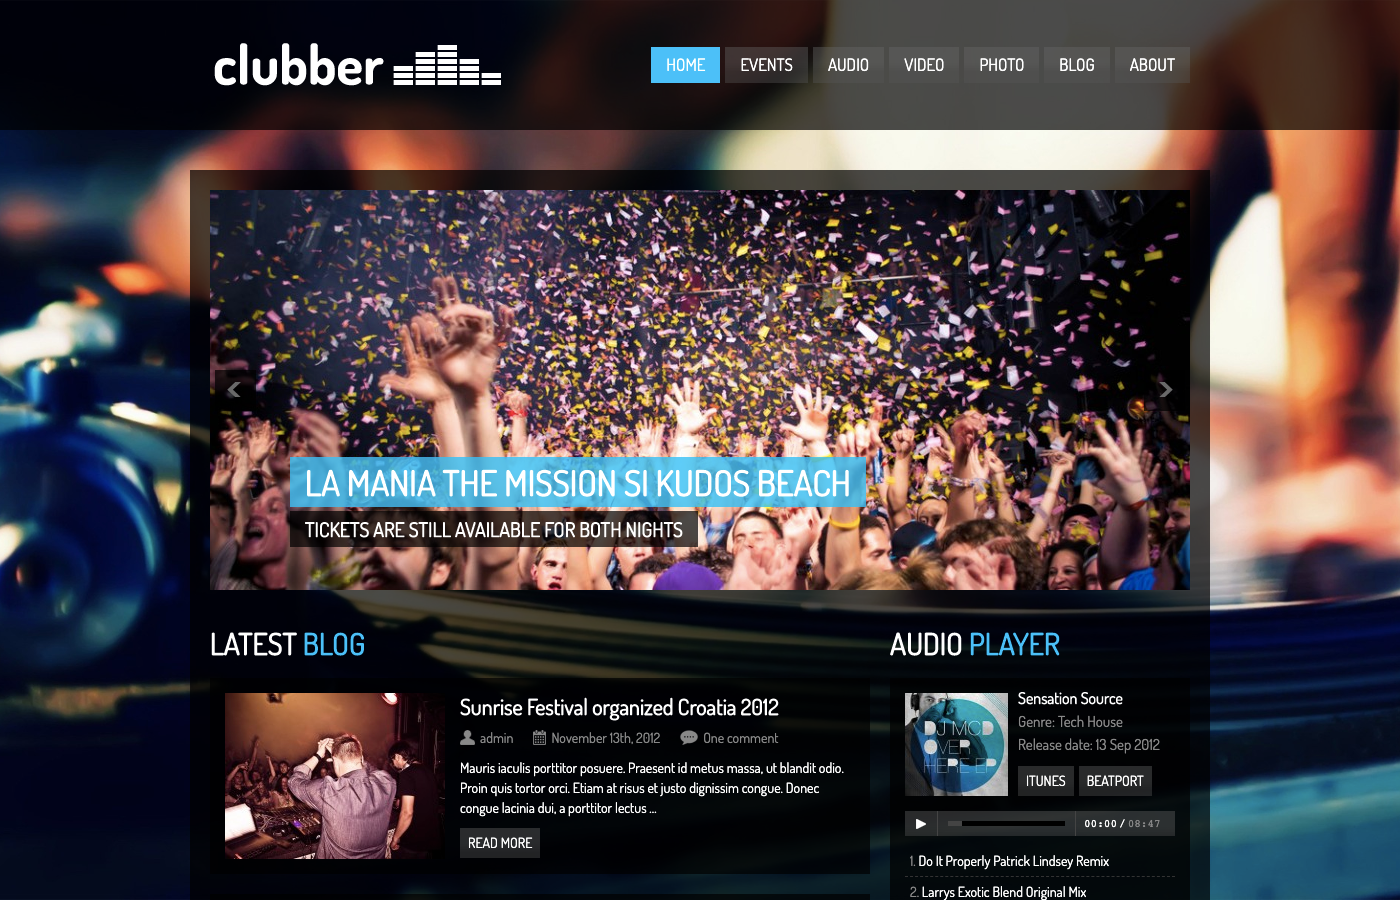 clubber